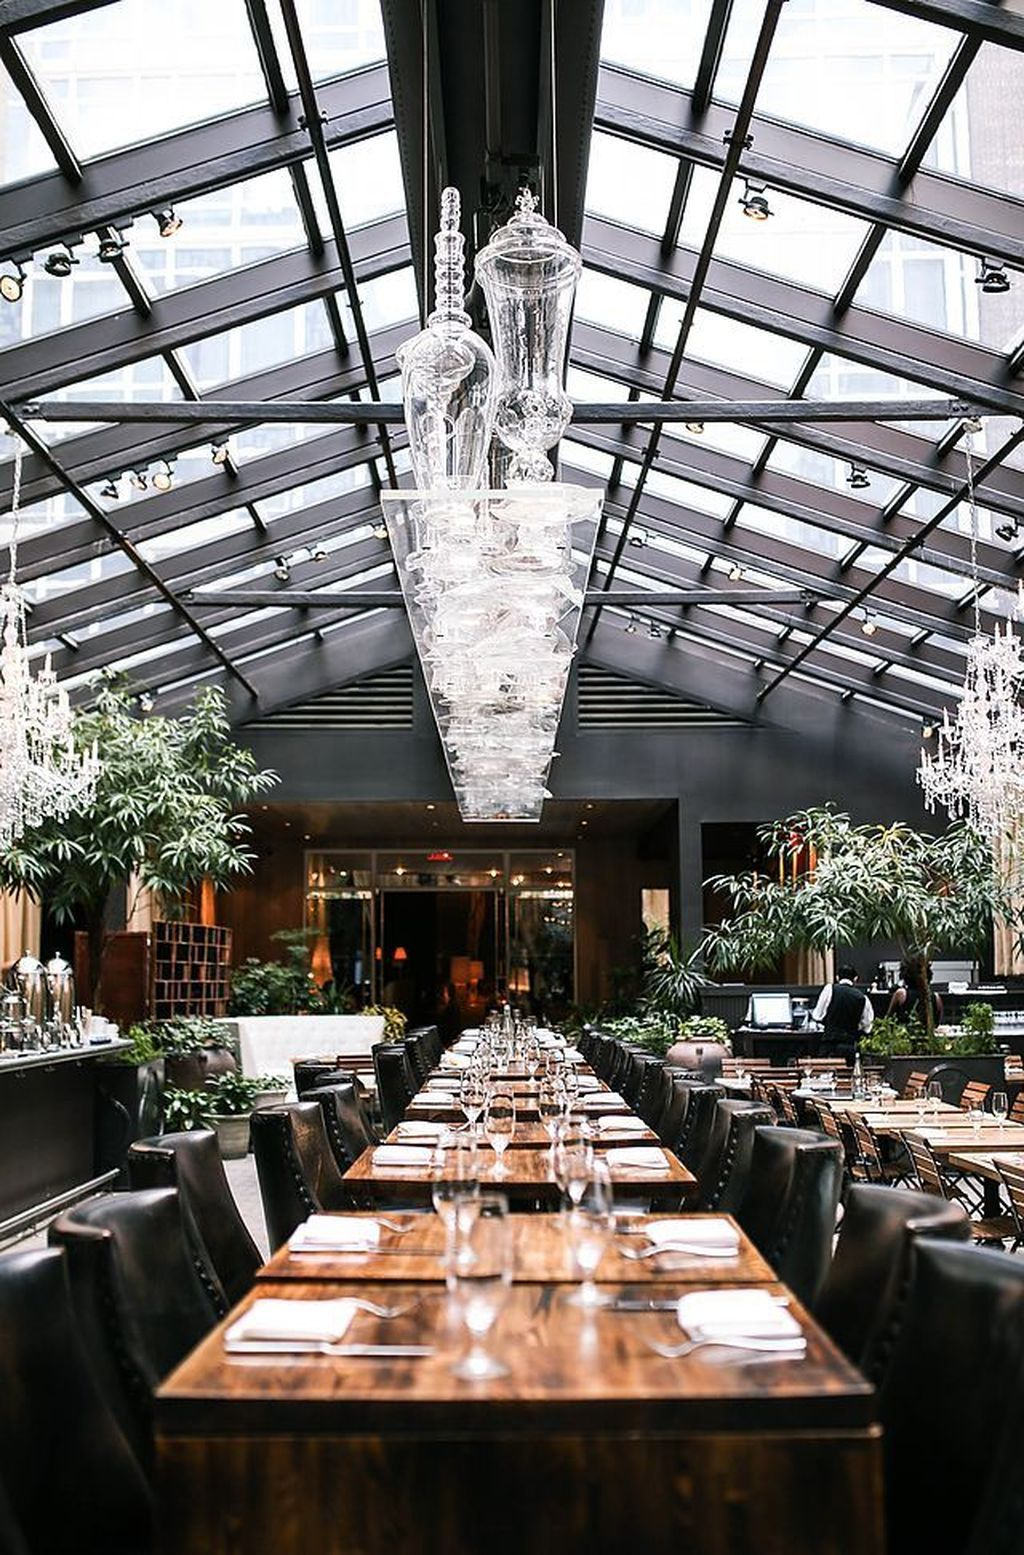 40+ Glass Ceiling Design and Ideas - The ceiling doesn't ...